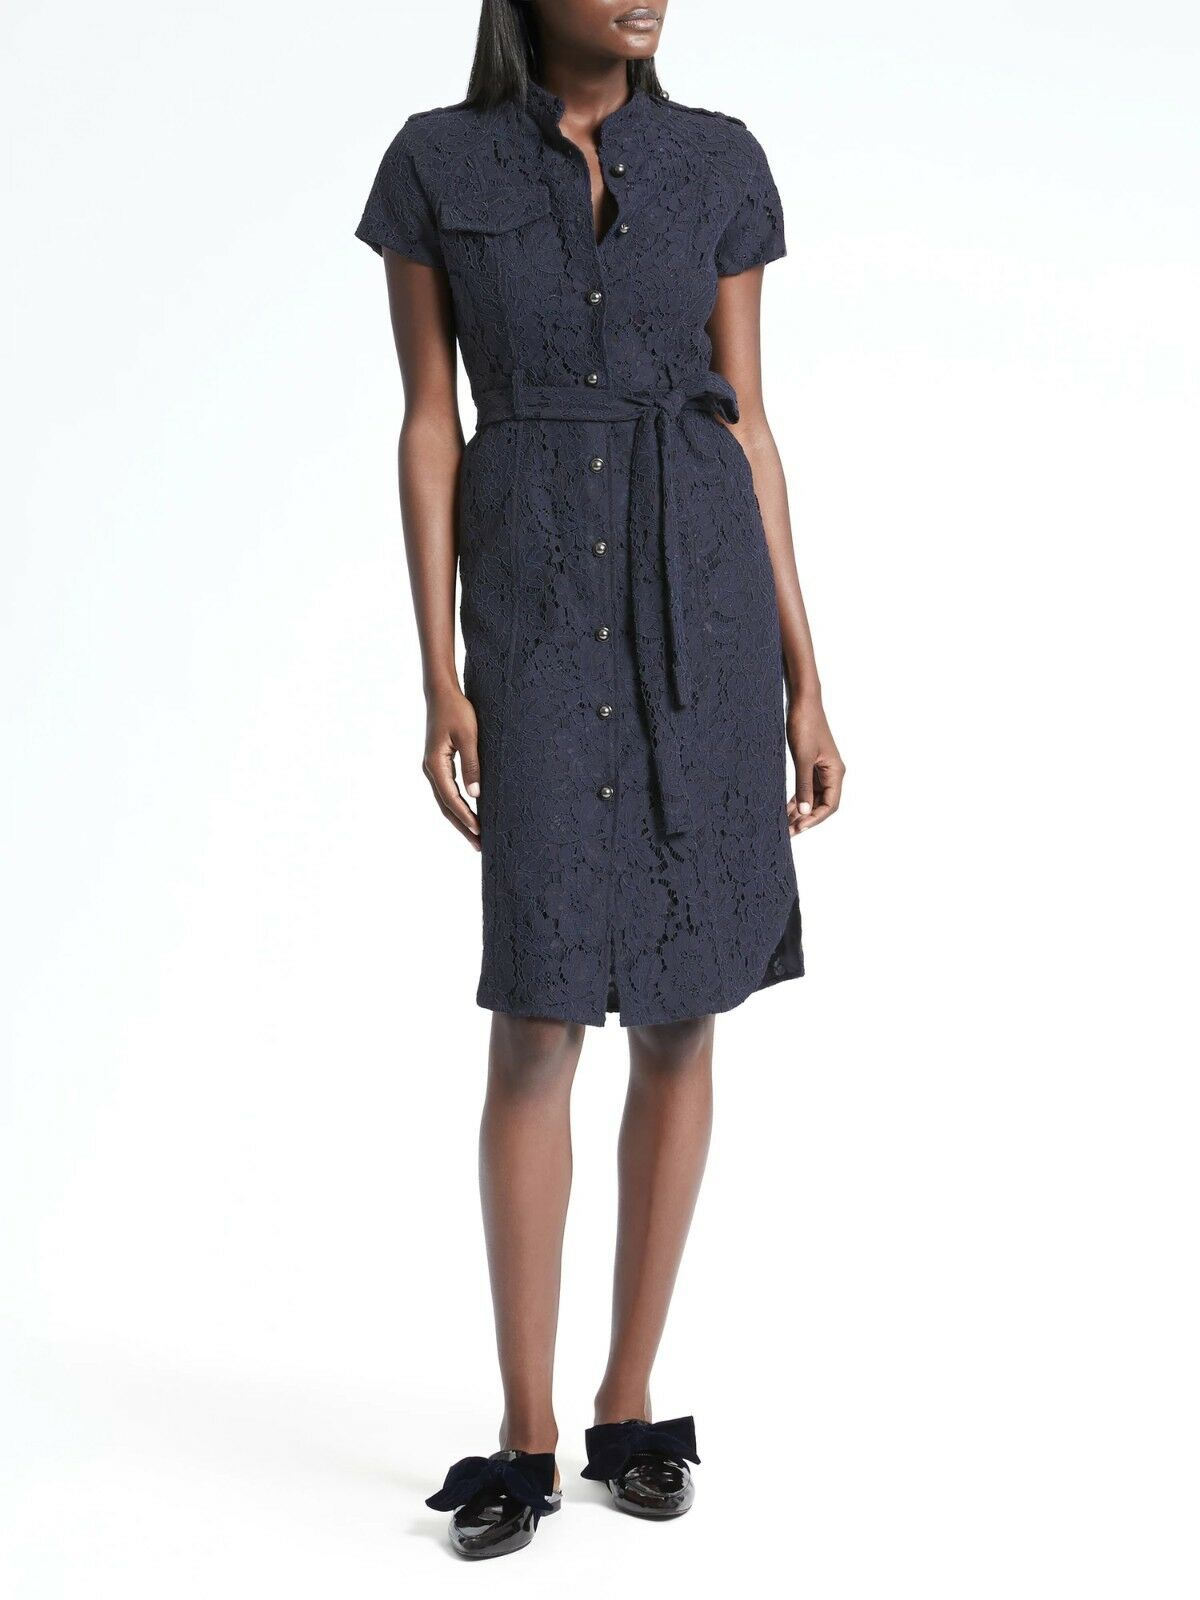 NWT Banana Republic Lace Belted Shirtdress, Navy Größe 0         E124